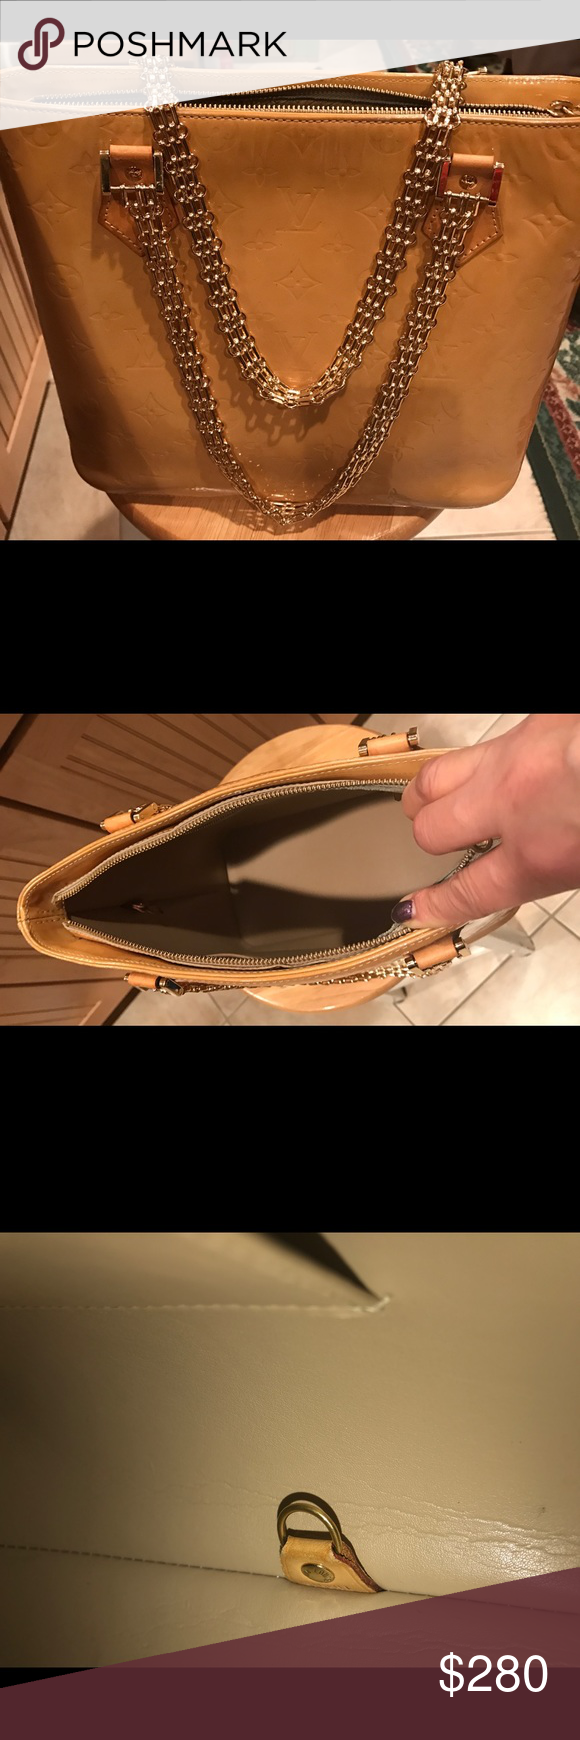 Louis Vuitton Houston Yellow Tote Bag Authentic Louis Vuitton Houston Yellow or Gold Tote Bag, I bought this bag to one of Posh seller, I never used it at all Louis Vuitton Bags Totes